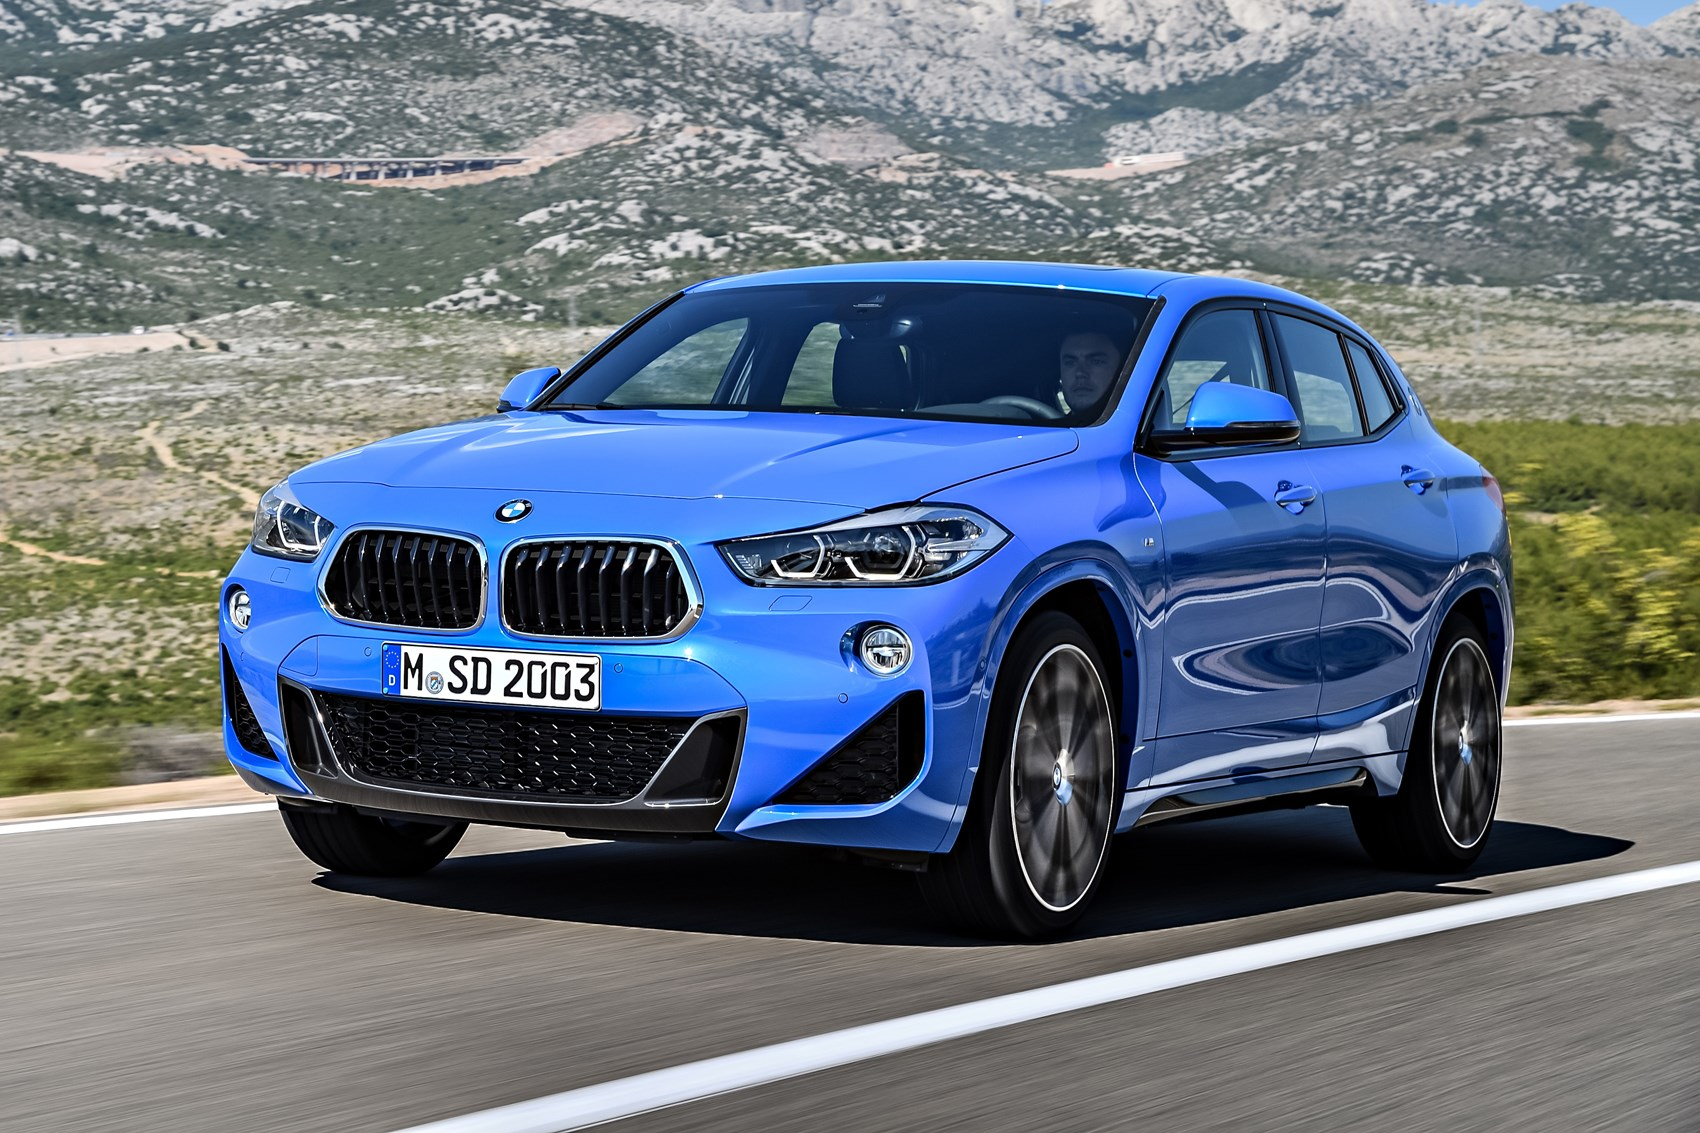 2018 Bmw X2 Interior >> BMW X2 review: summary | Parkers